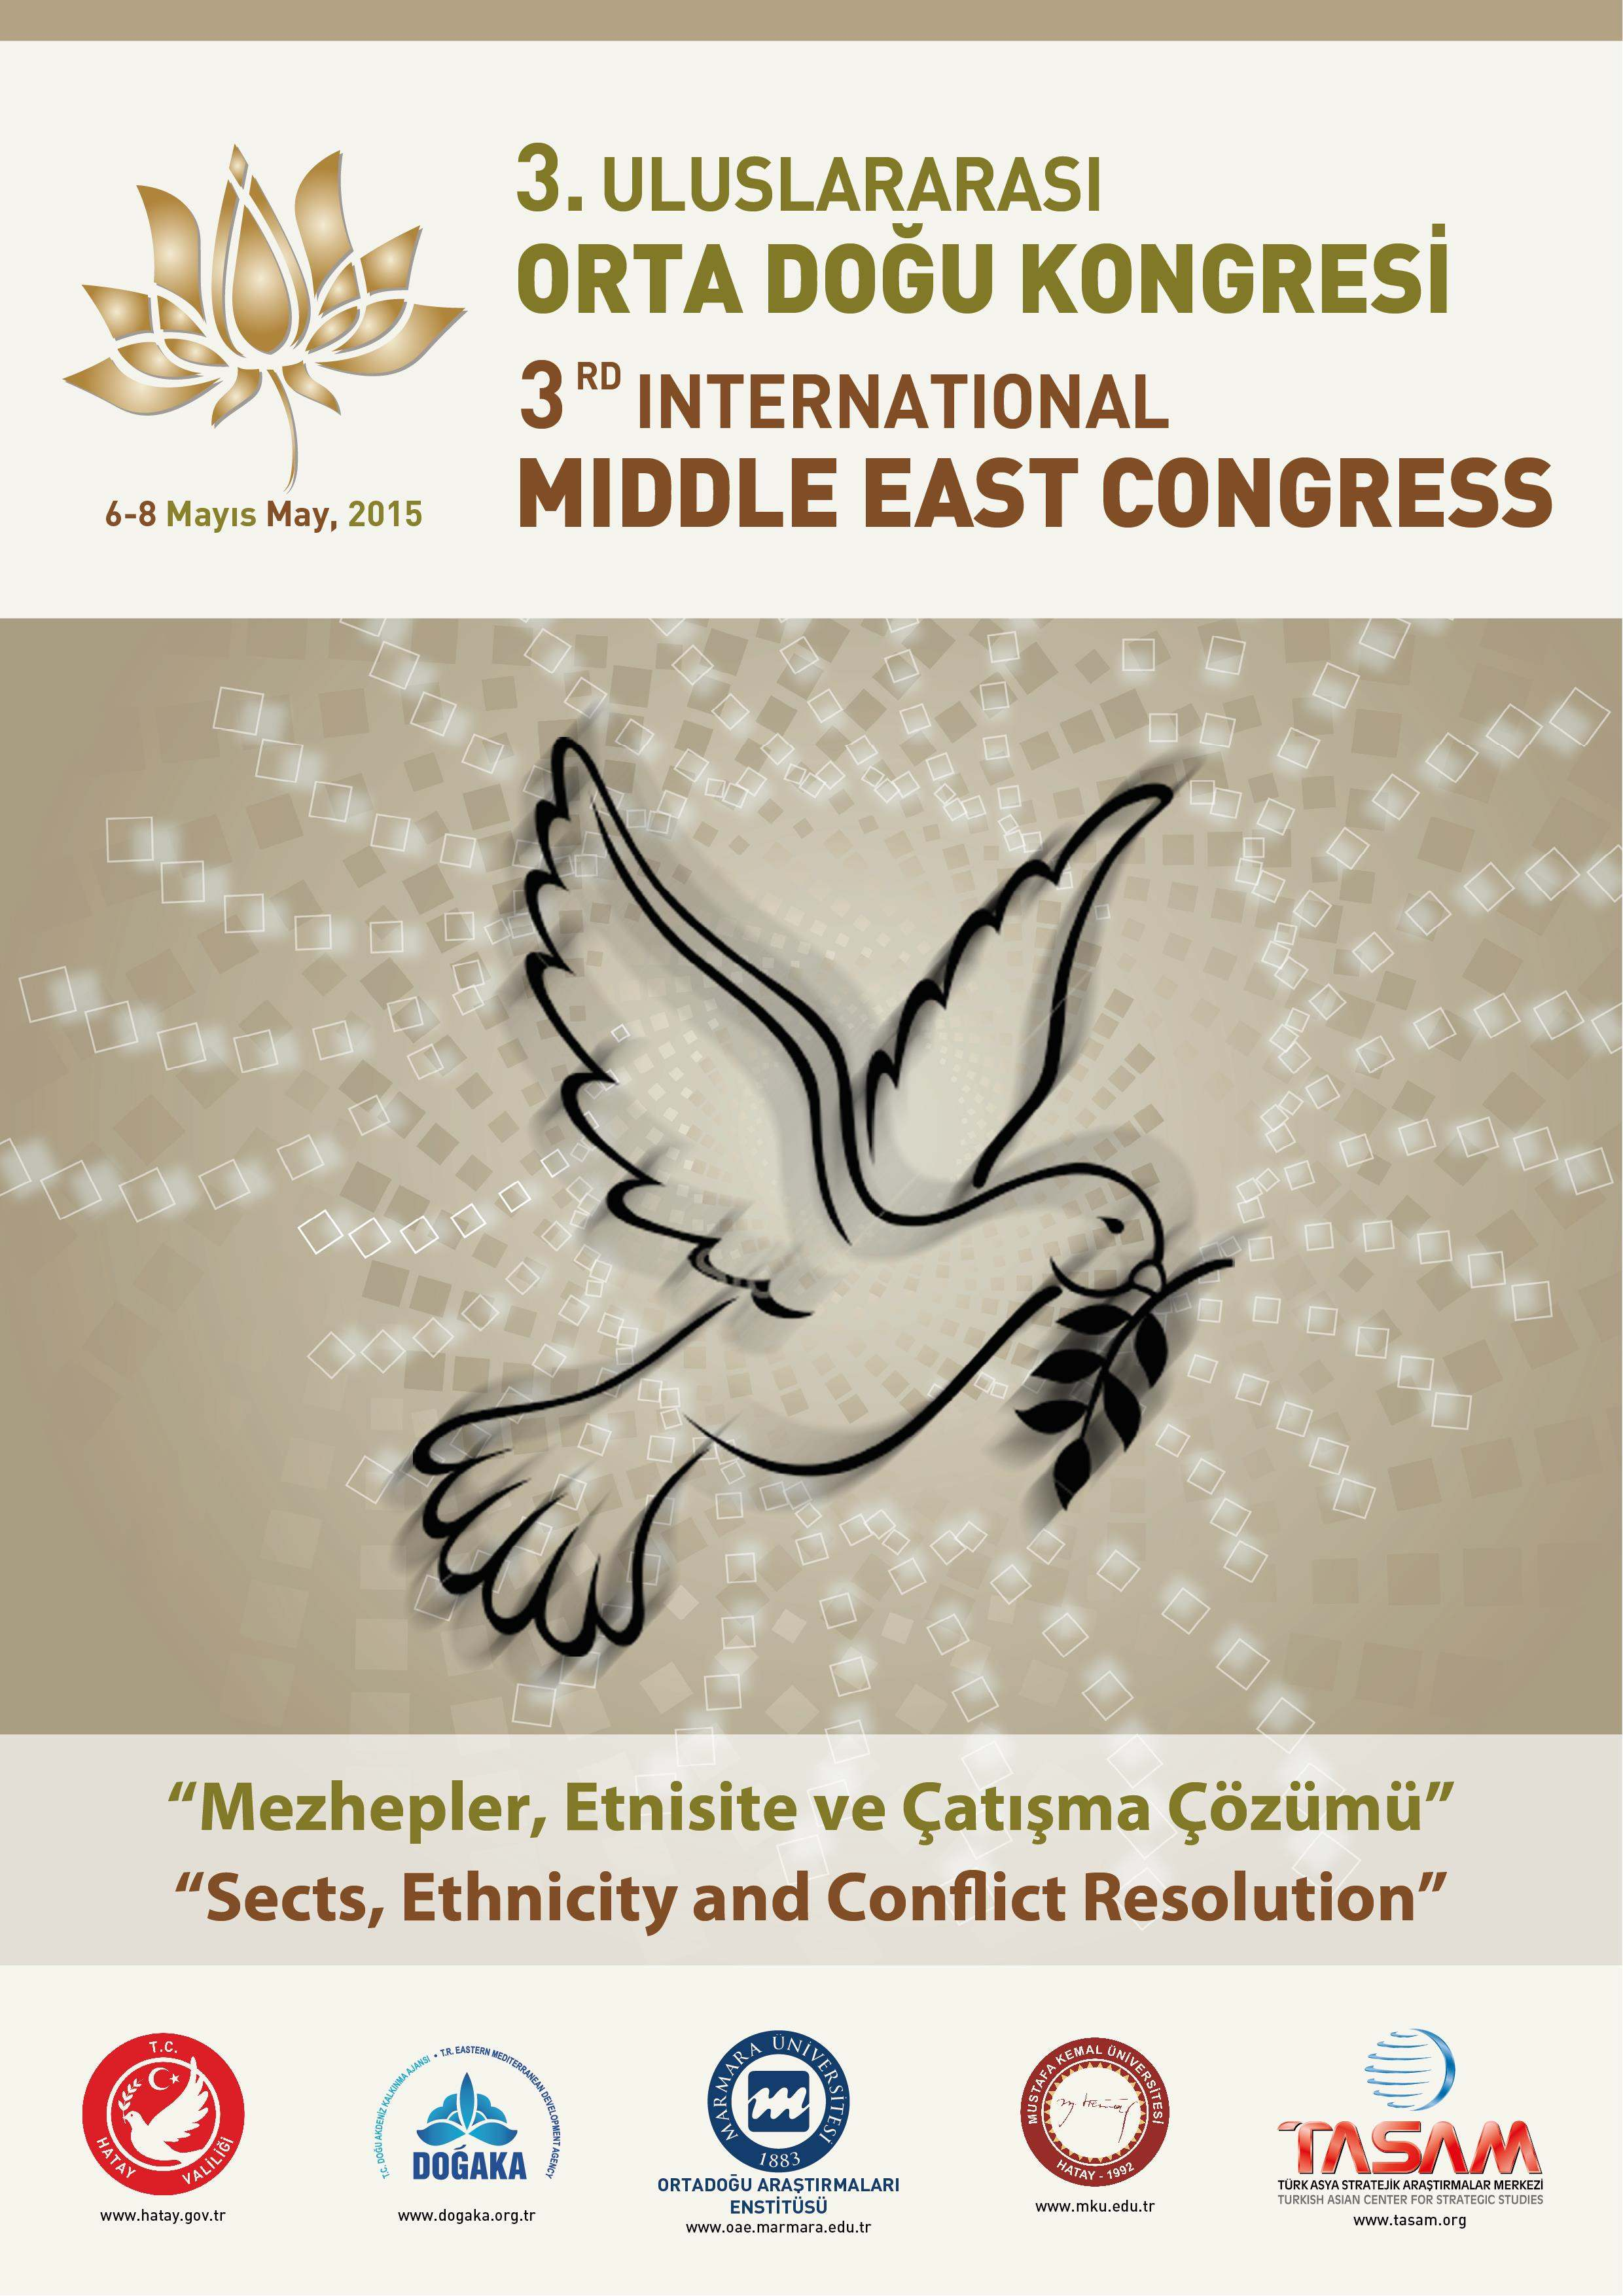 3rd International Middle East Congress